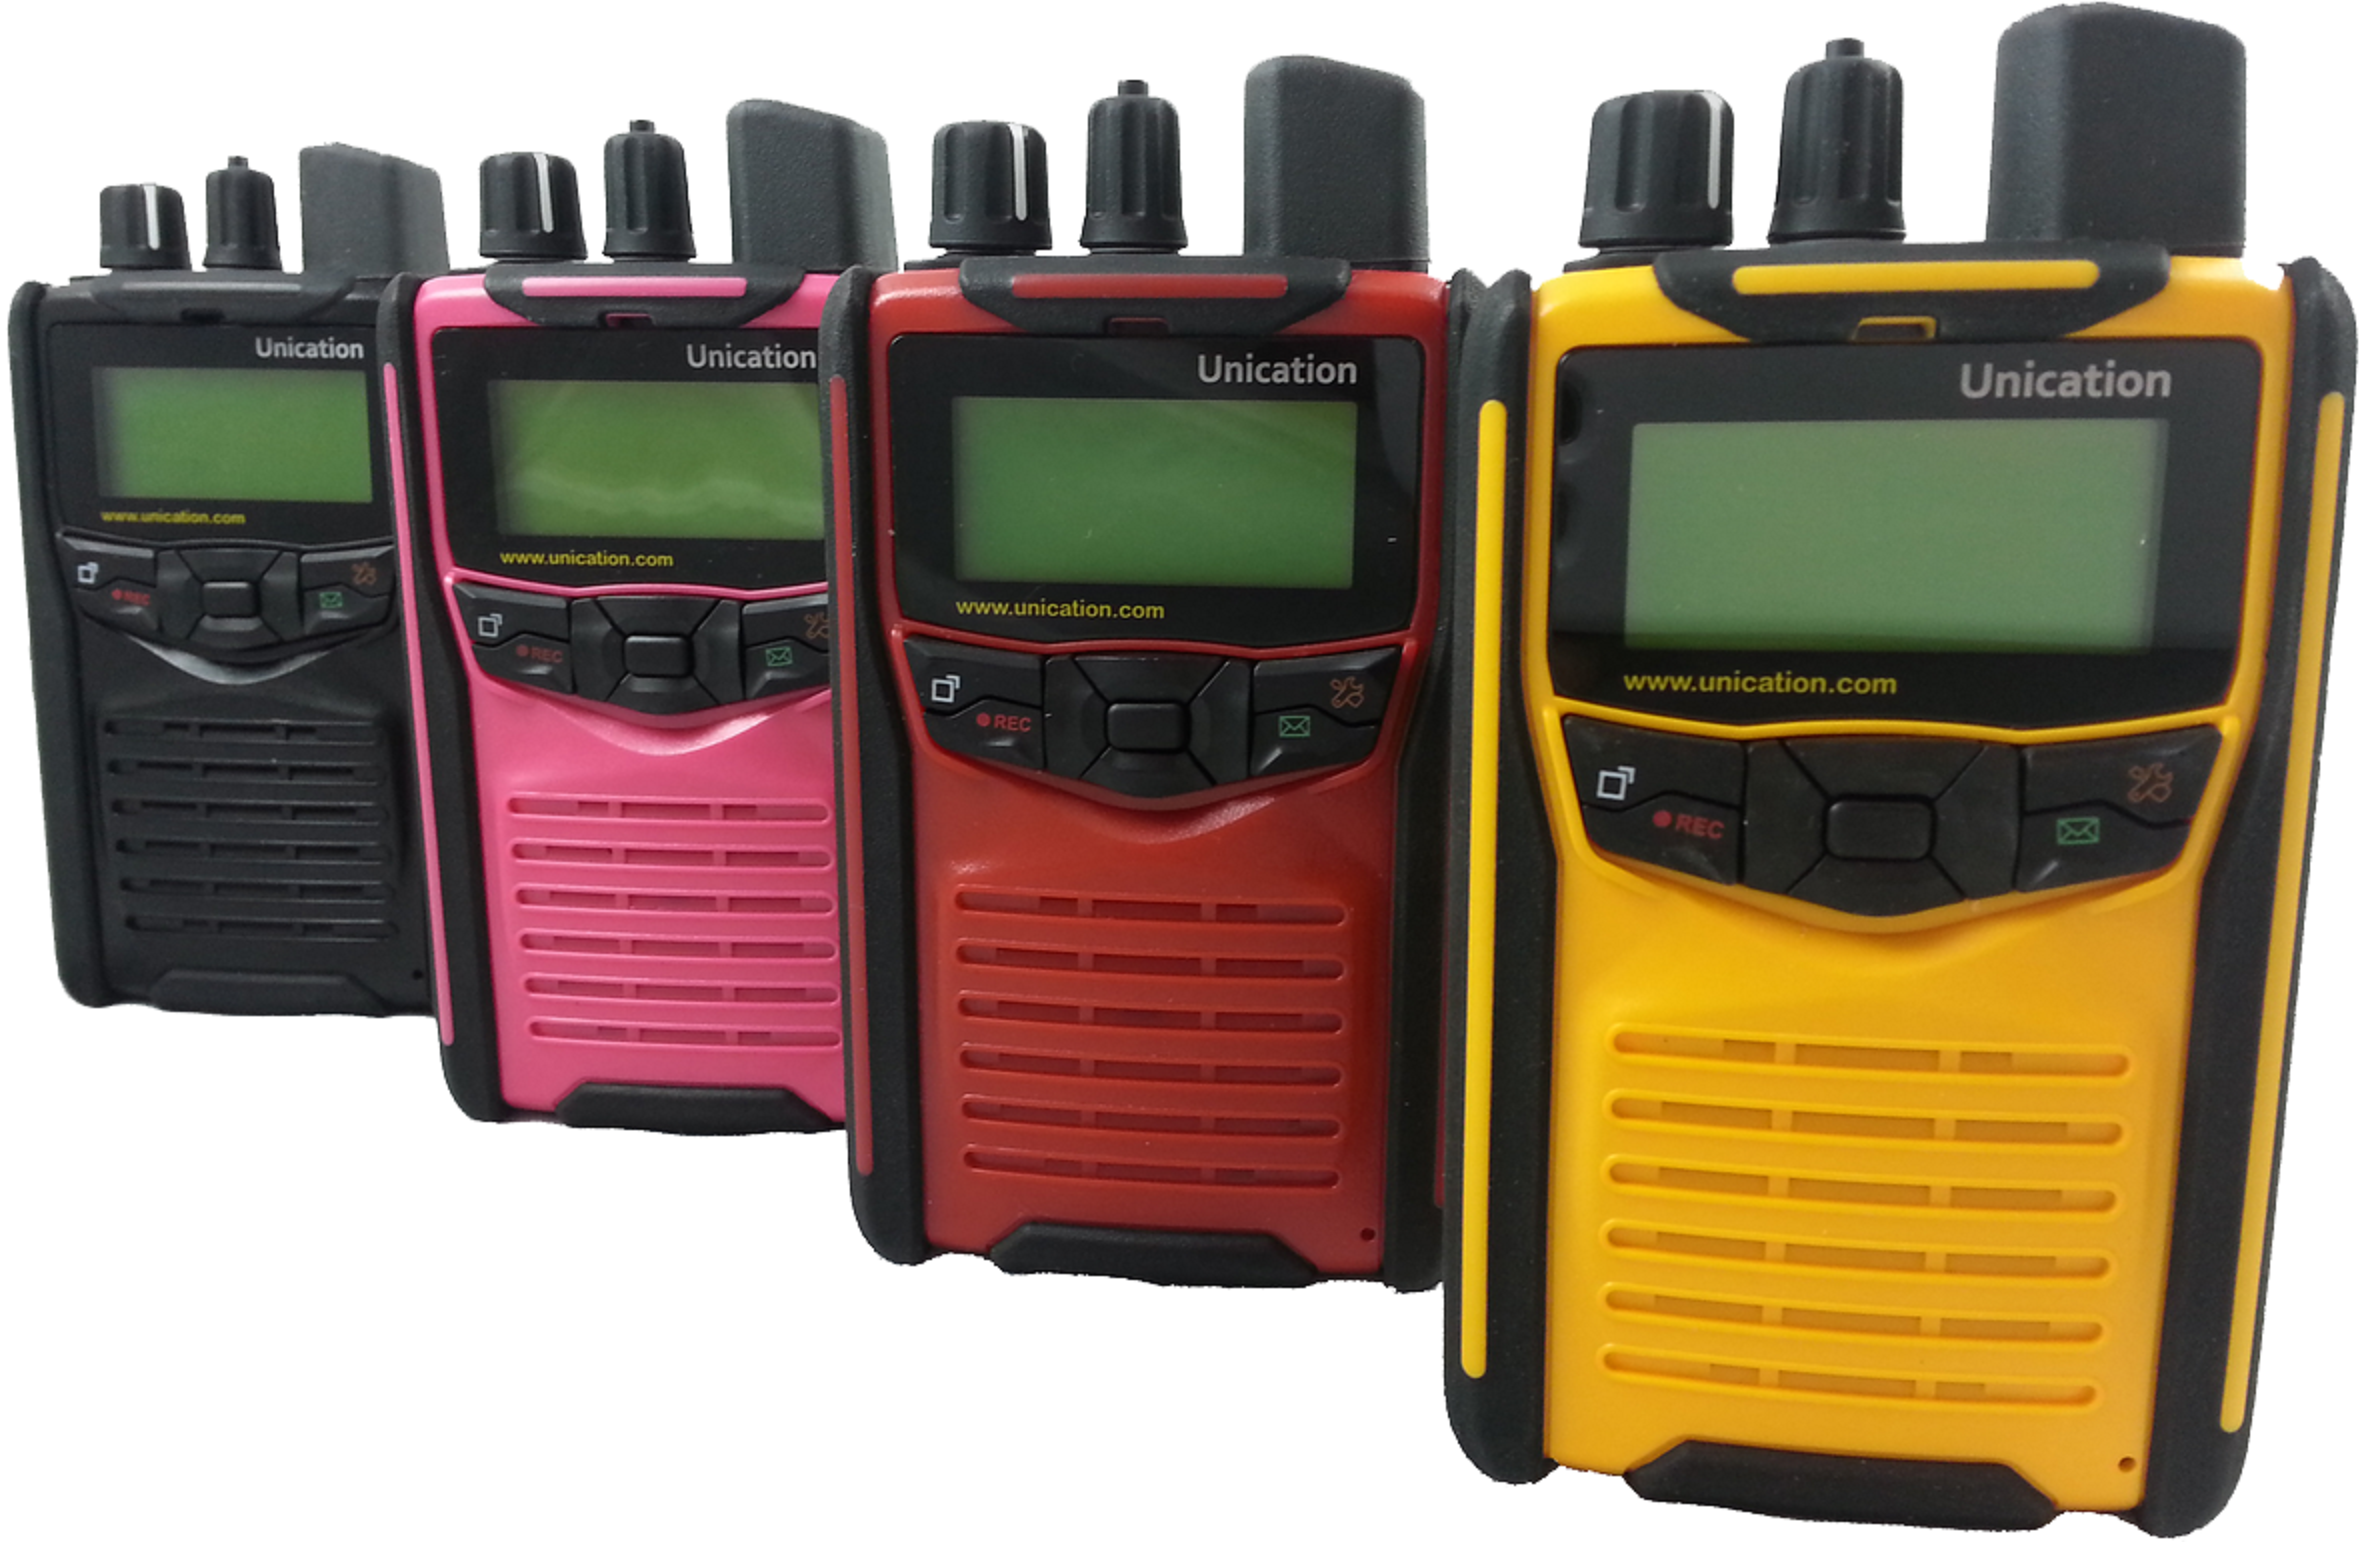 Unication G1 Pager